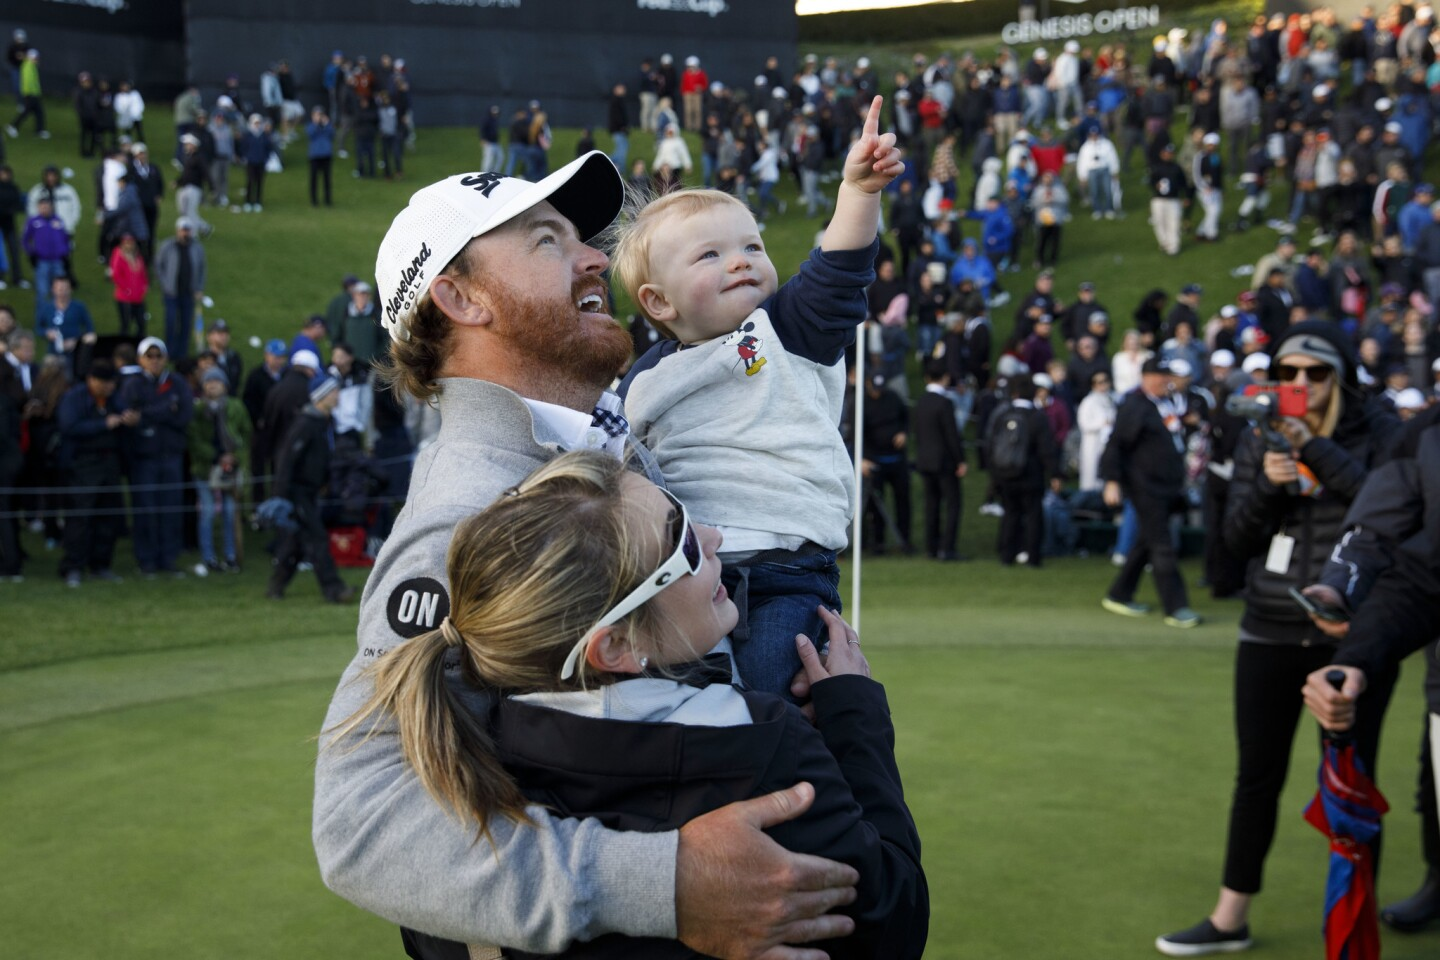 J.B. Holmes hugs his son Tucker and wife Erica after winning on the 18th hole the Genesis Open golf tournament at the Riviera Country Club.